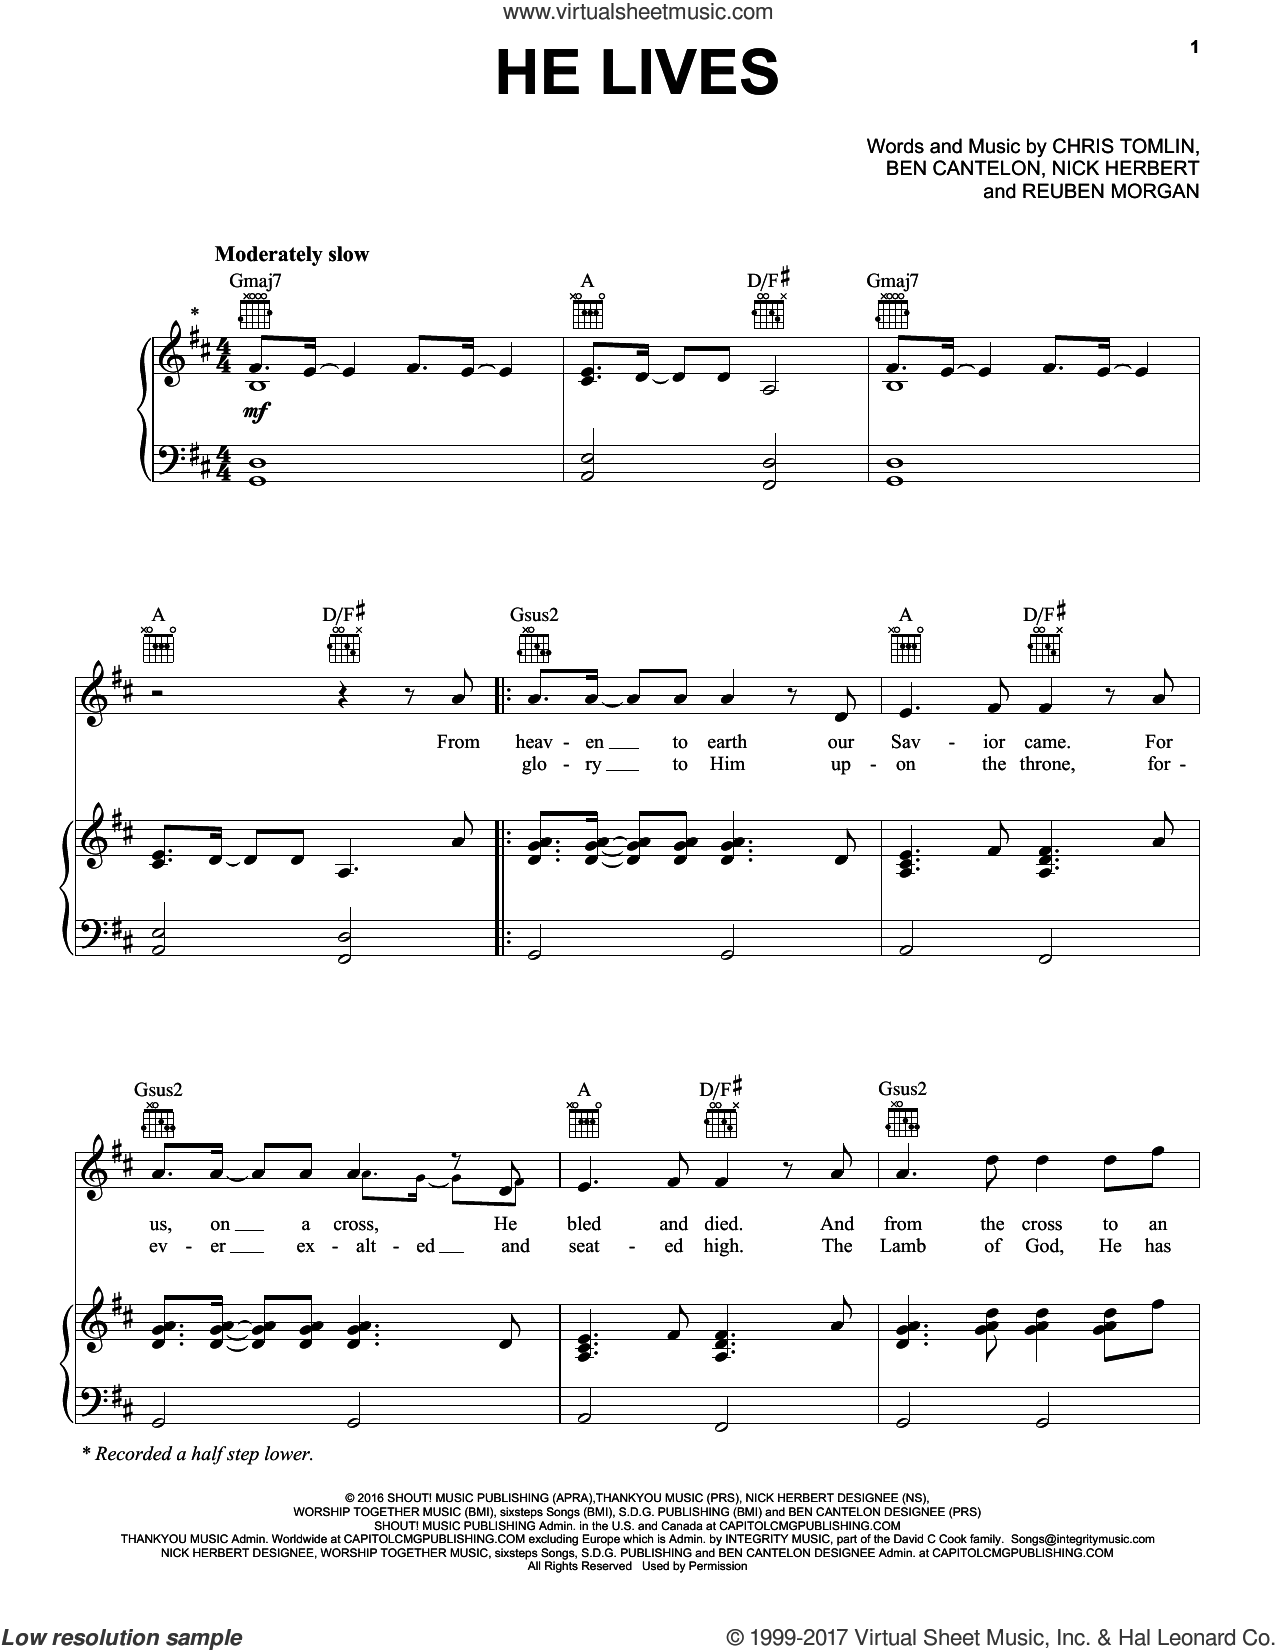 He Lives sheet music for voice, piano or guitar by Chris Tomlin, Ben Cantelon, Nick Herbert and Reuben Morgan, intermediate skill level